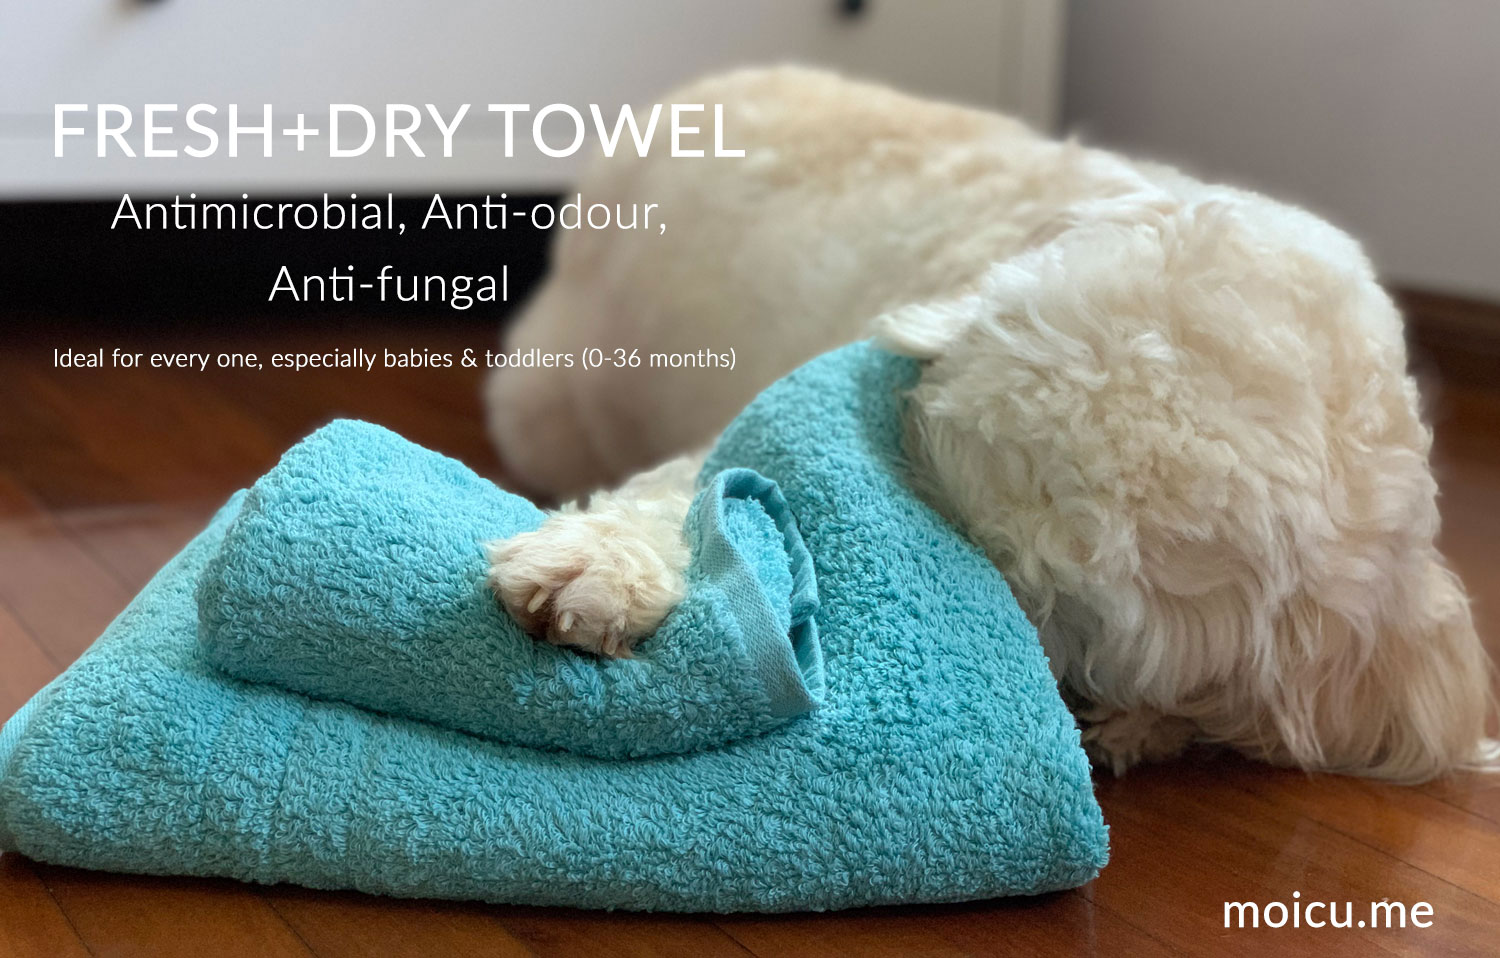 Towel is protected by Silver ions